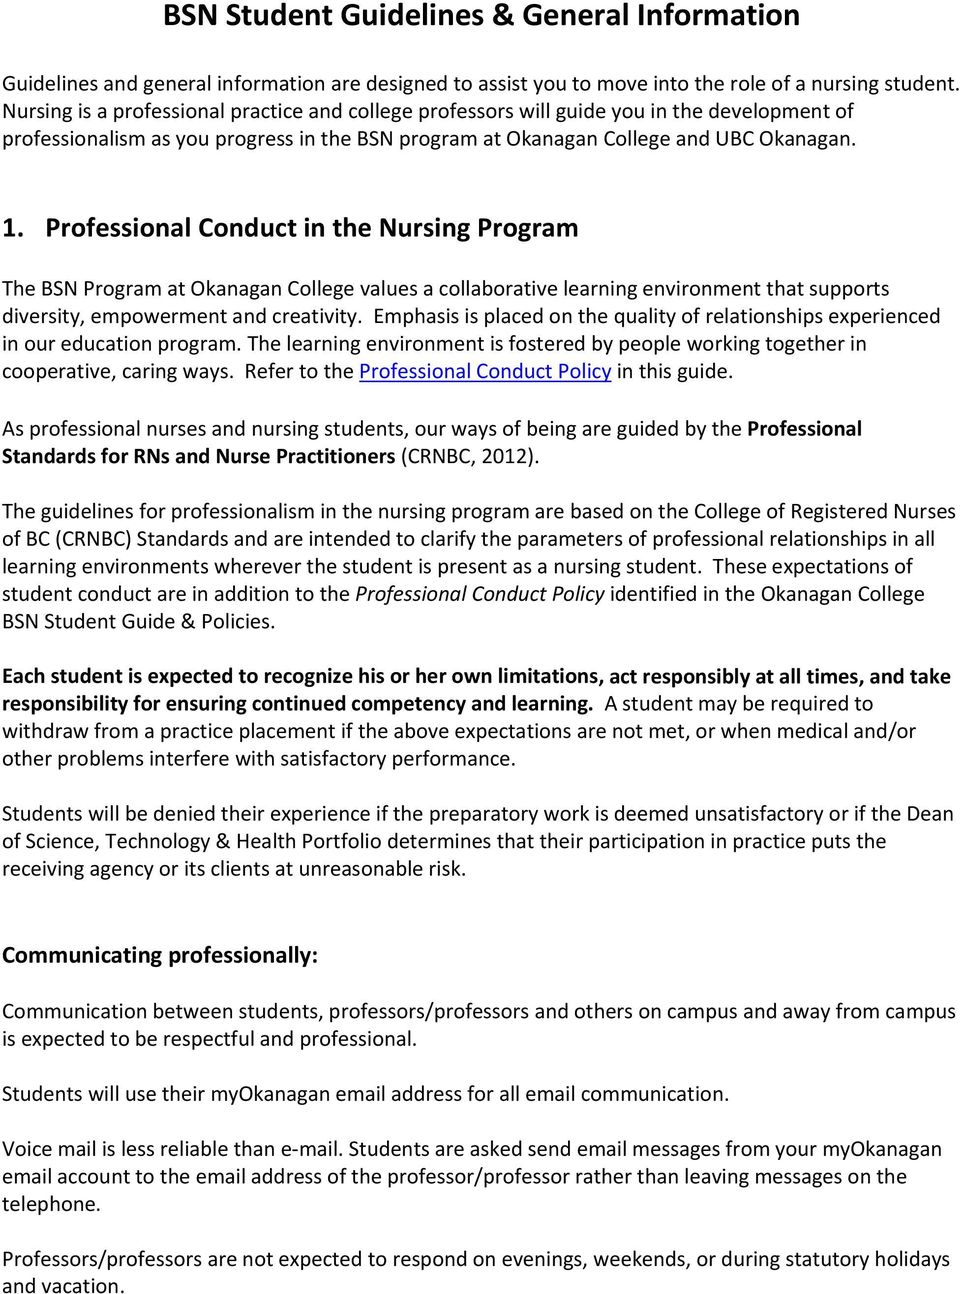 Professional Conduct in the Nursing Program The BSN Program at Okanagan College values a collaborative learning environment that supports diversity, empowerment and creativity.